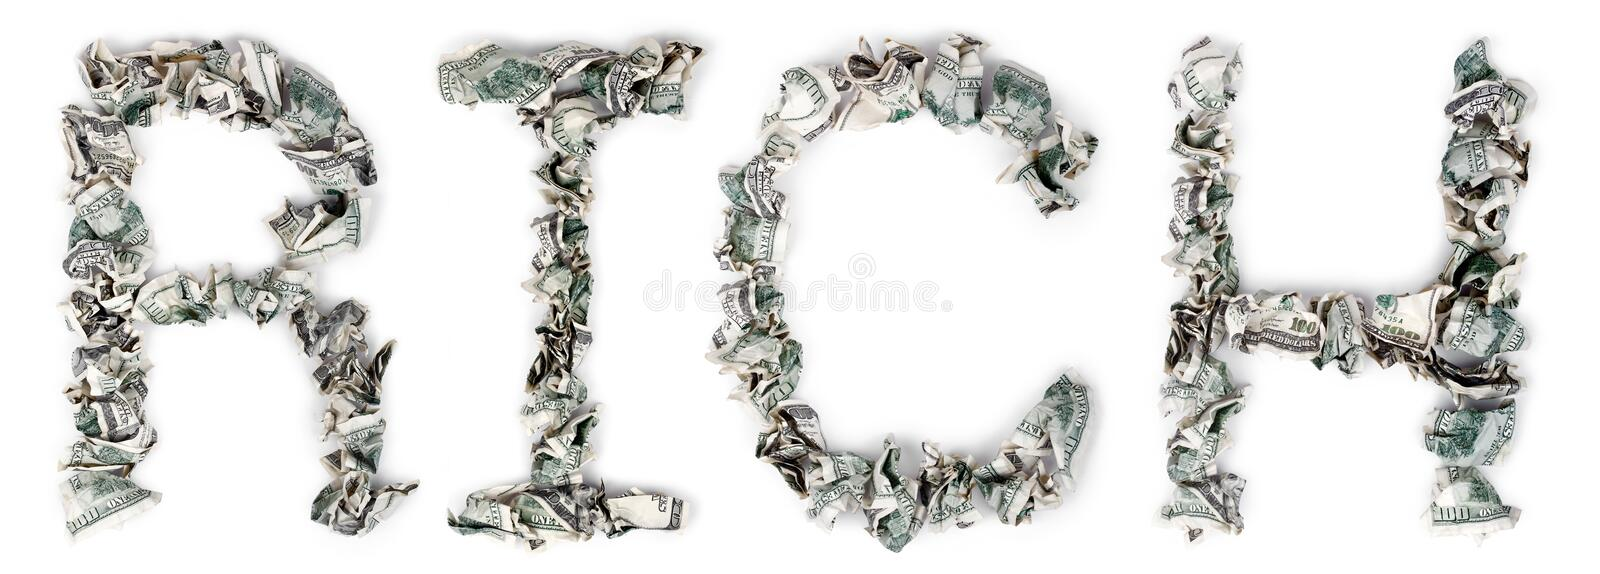 Download Rich - Crimped 100$ Bills stock image. Image of large - 29770825